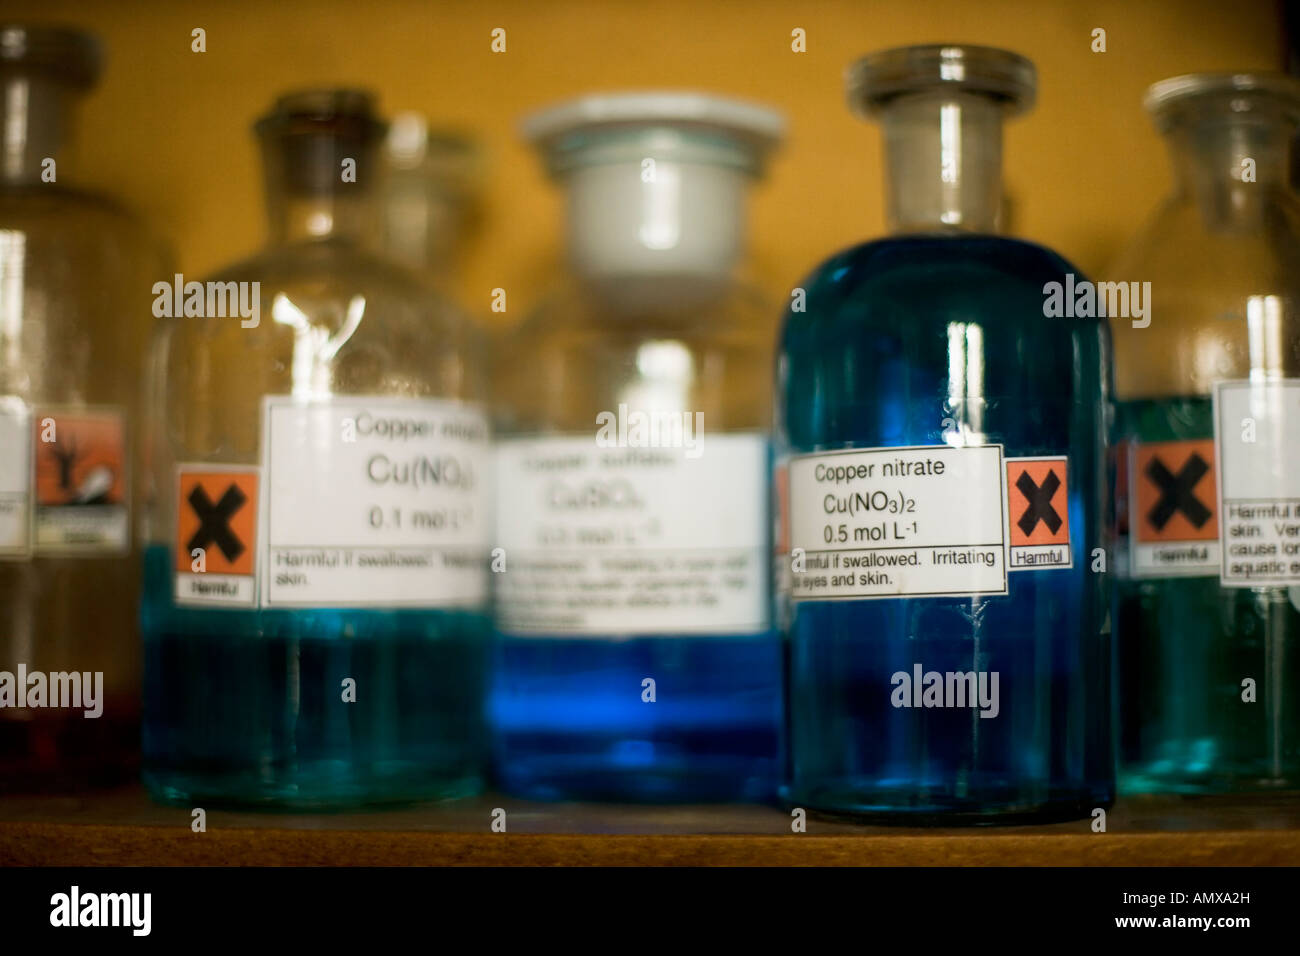 Glass storage jars containing chemicals in a school laboratory - Stock Image